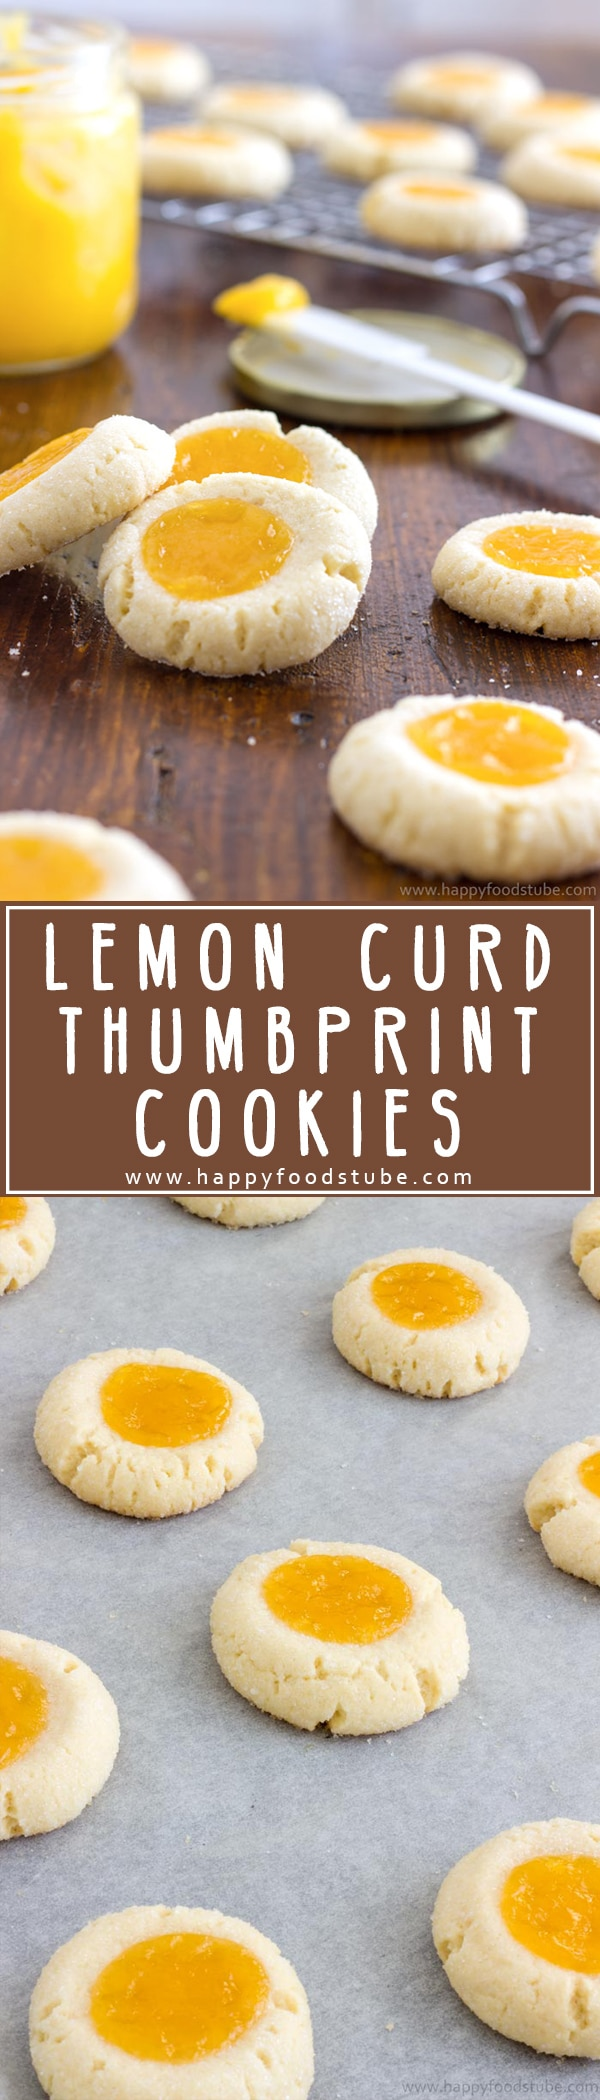 Homemade lemon curd thumbprint cookies are pure perfection! A combination of sweet buttery cookies and citrusy topping with a hint of almonds! Super easy recipe. | happyfoodstube.com